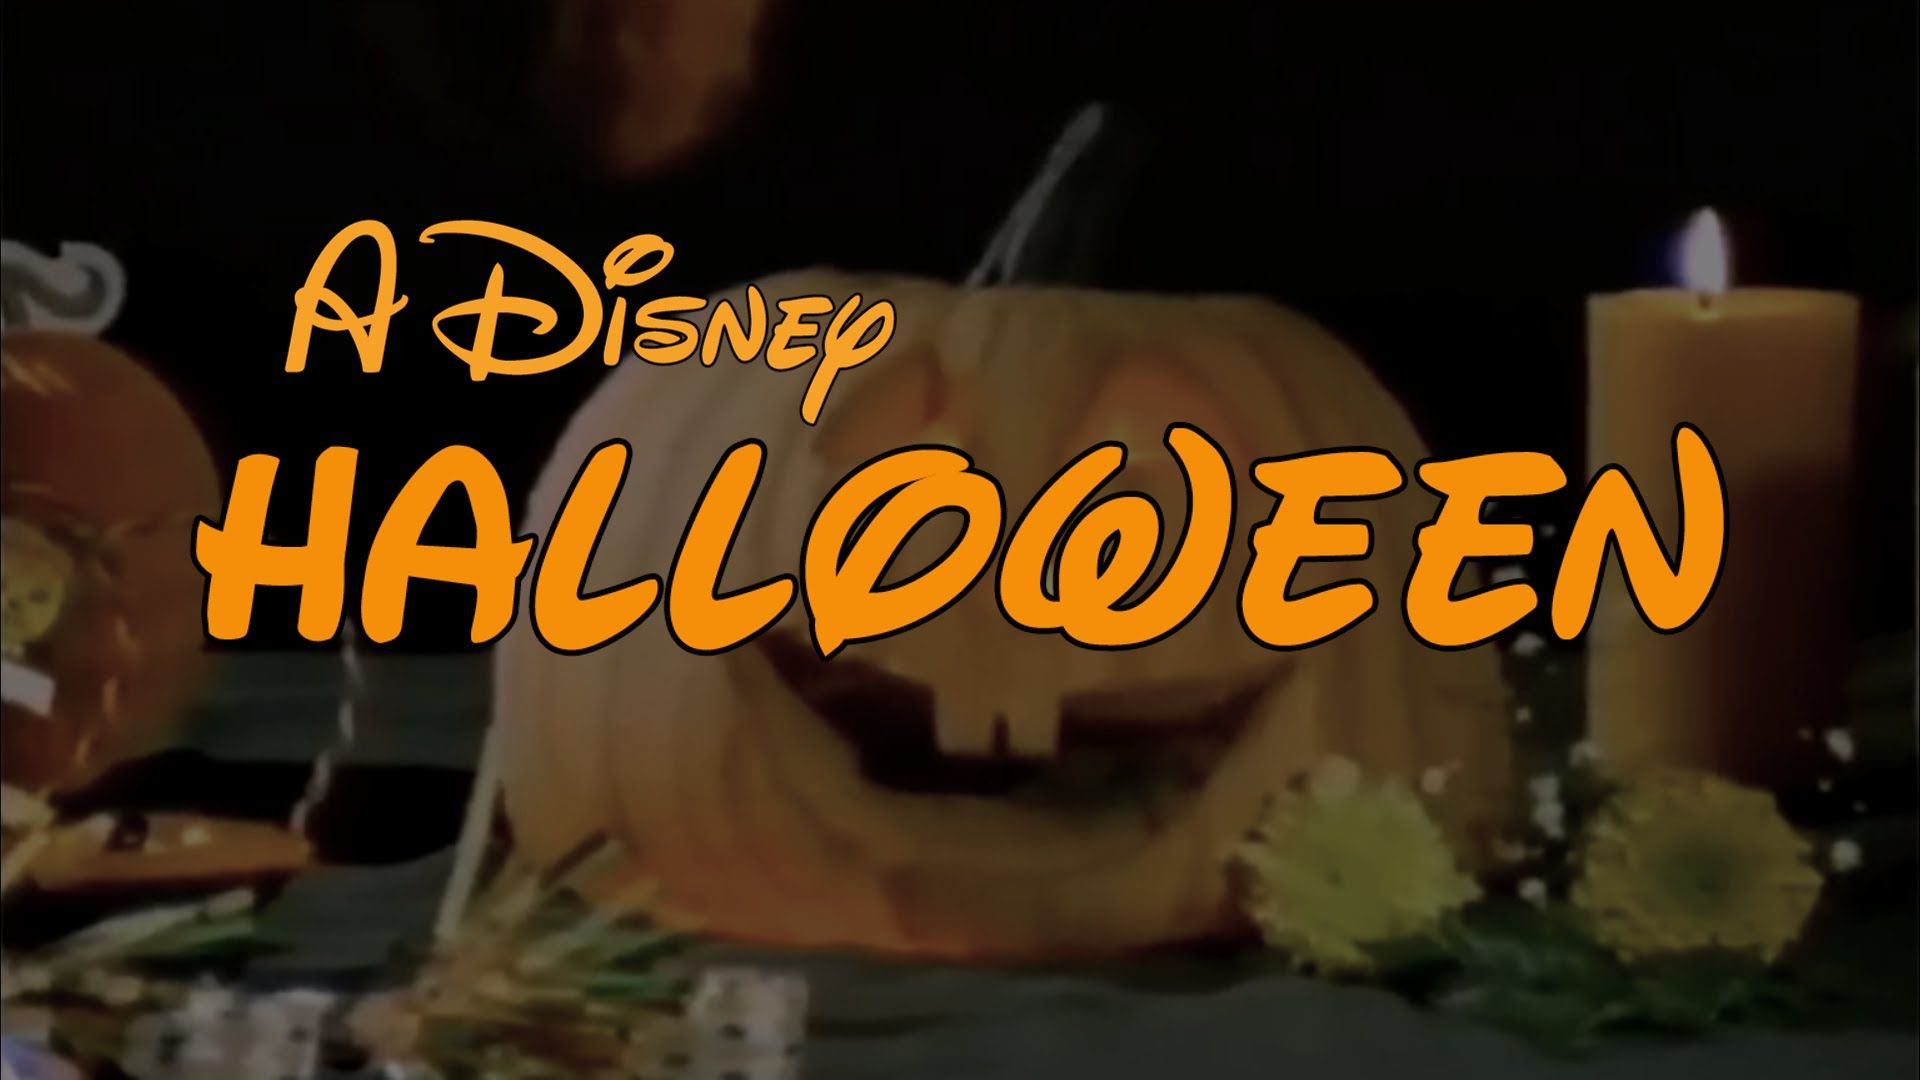 The 9 Most Iconic Disney Channel Halloween Episodes